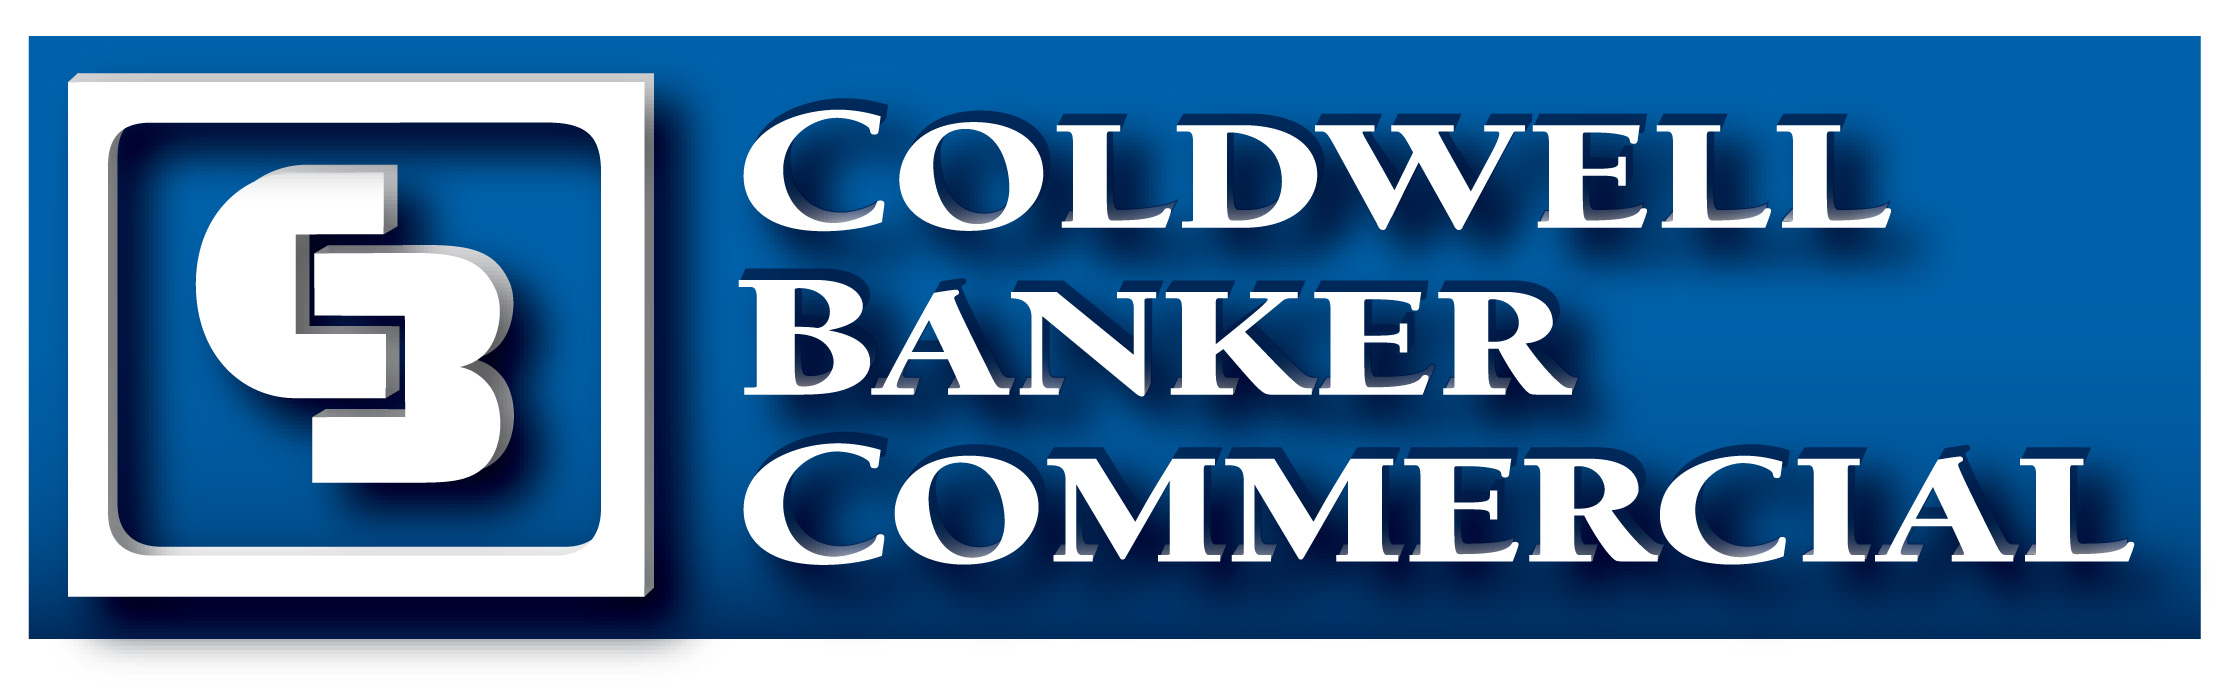 Coldwell Banker Commercial.jpg